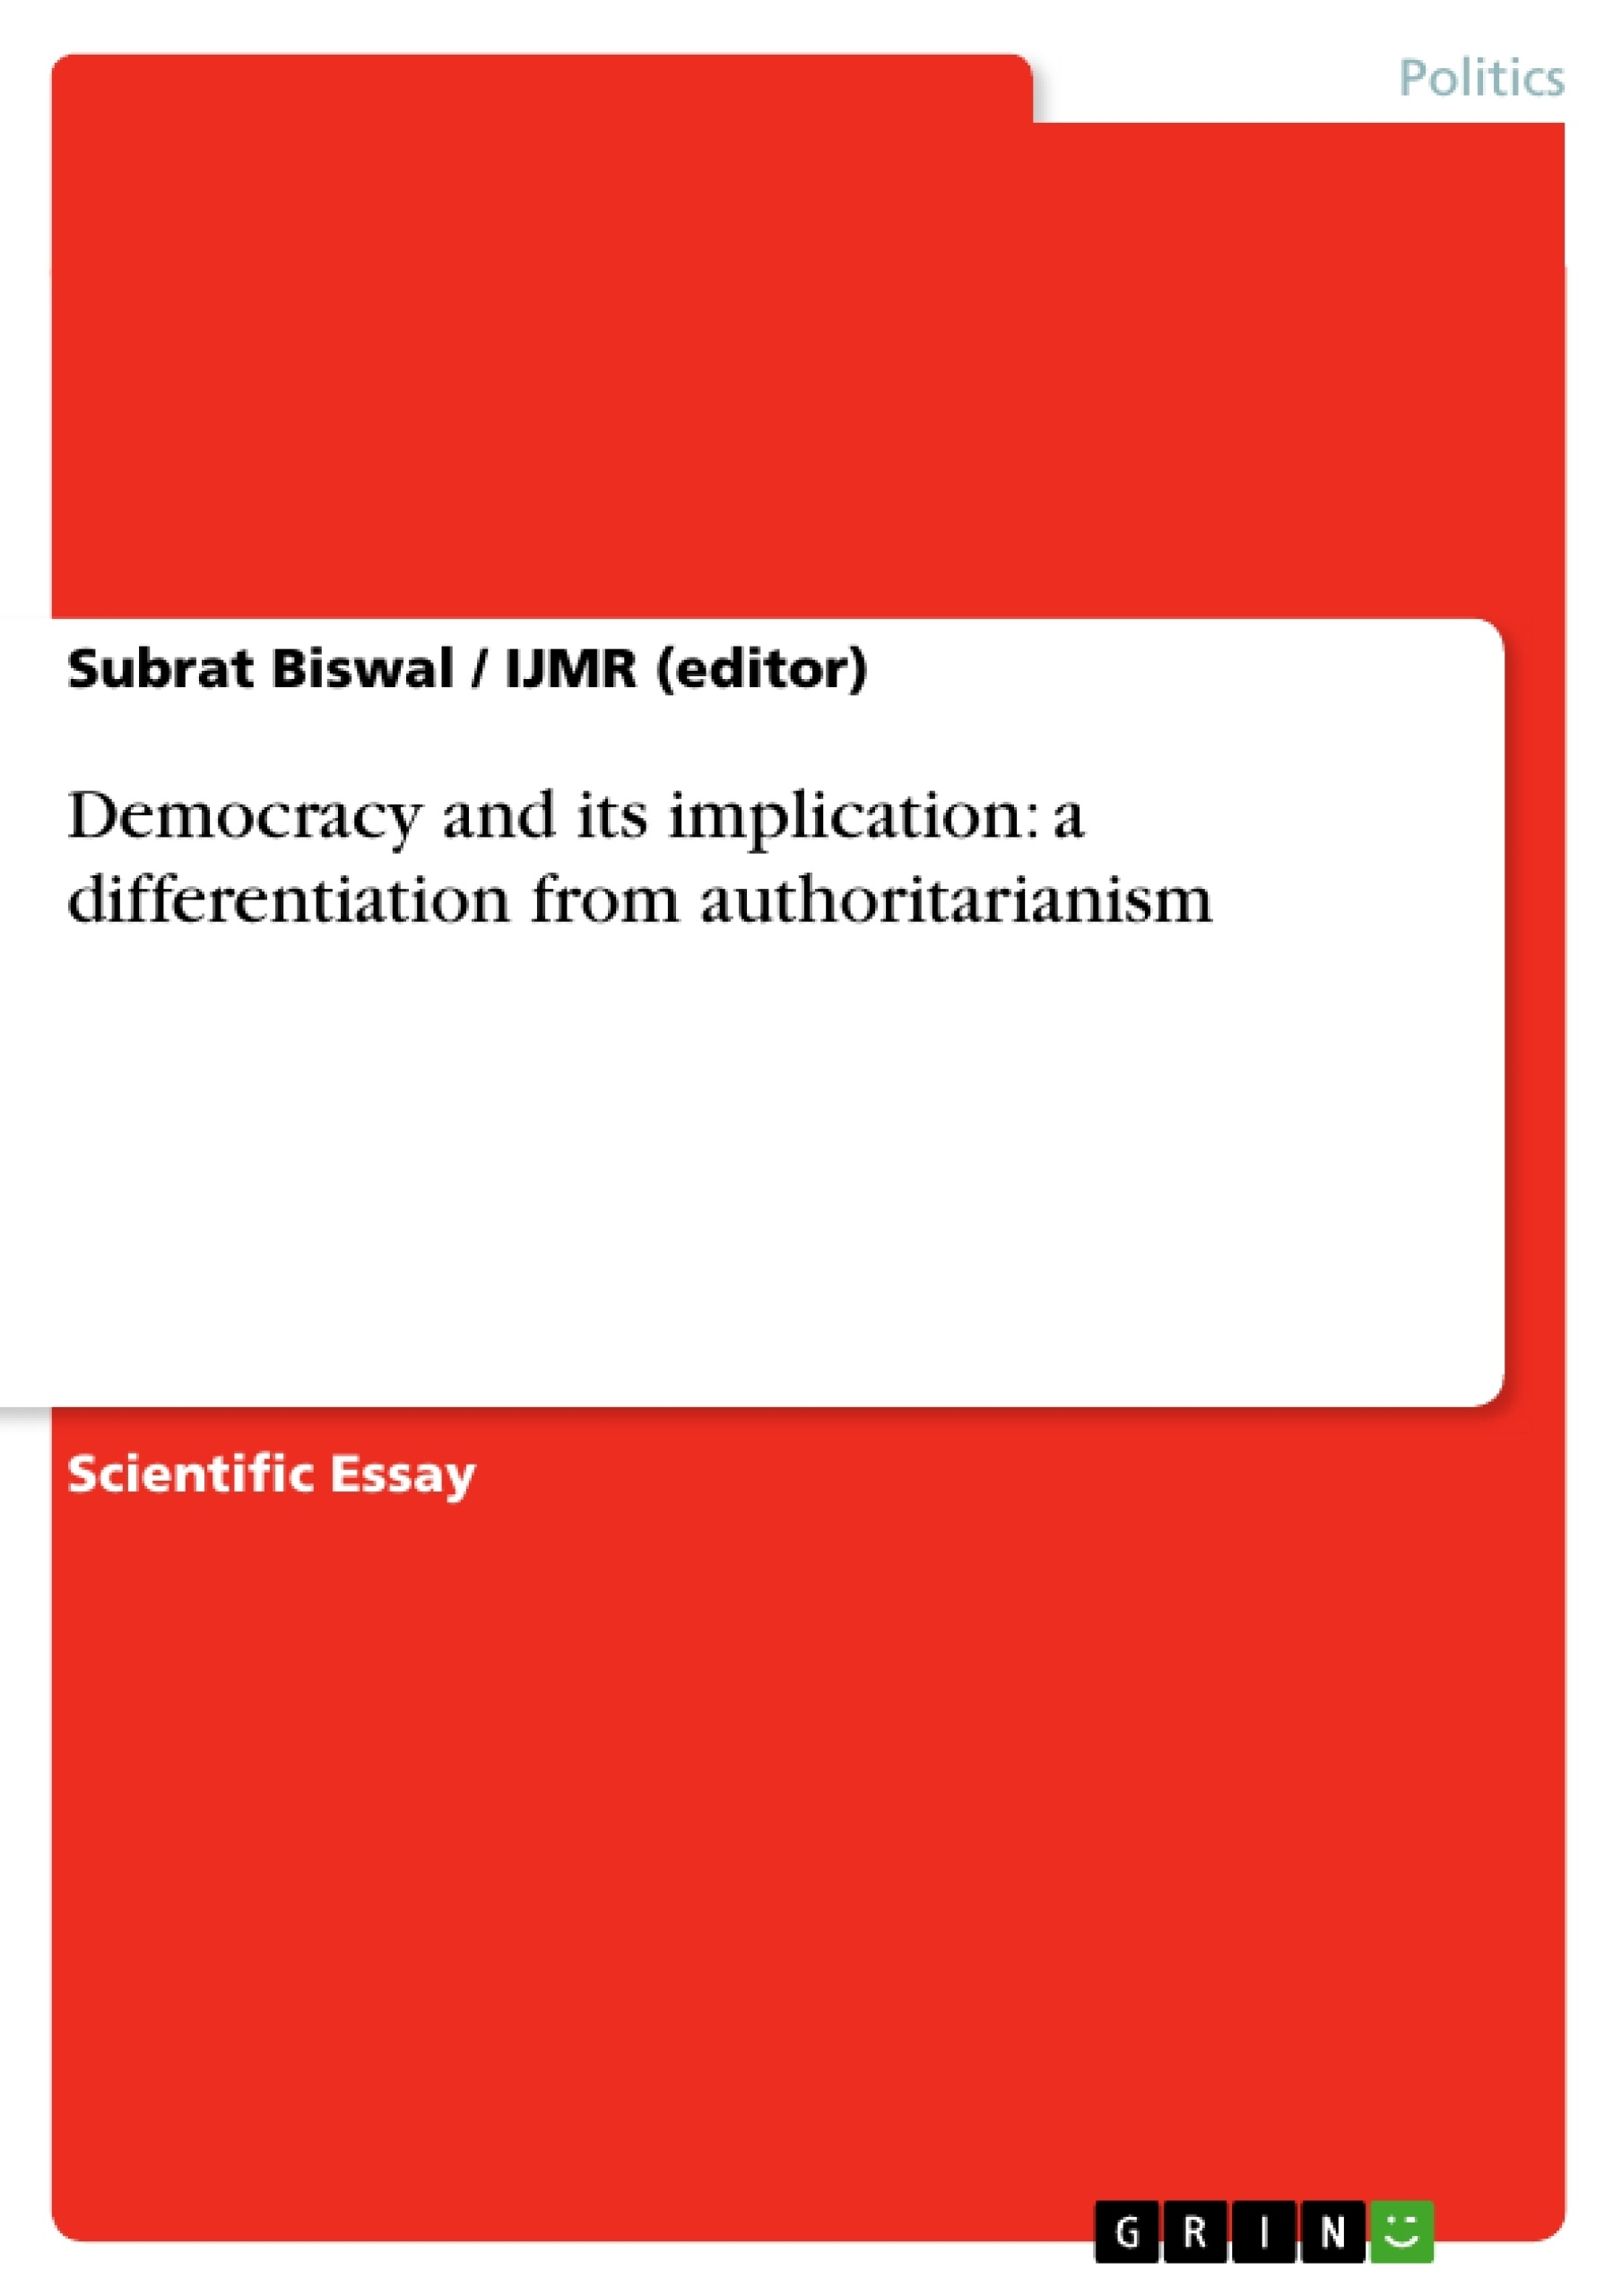 Title: Democracy and its implication: a differentiation from authoritarianism